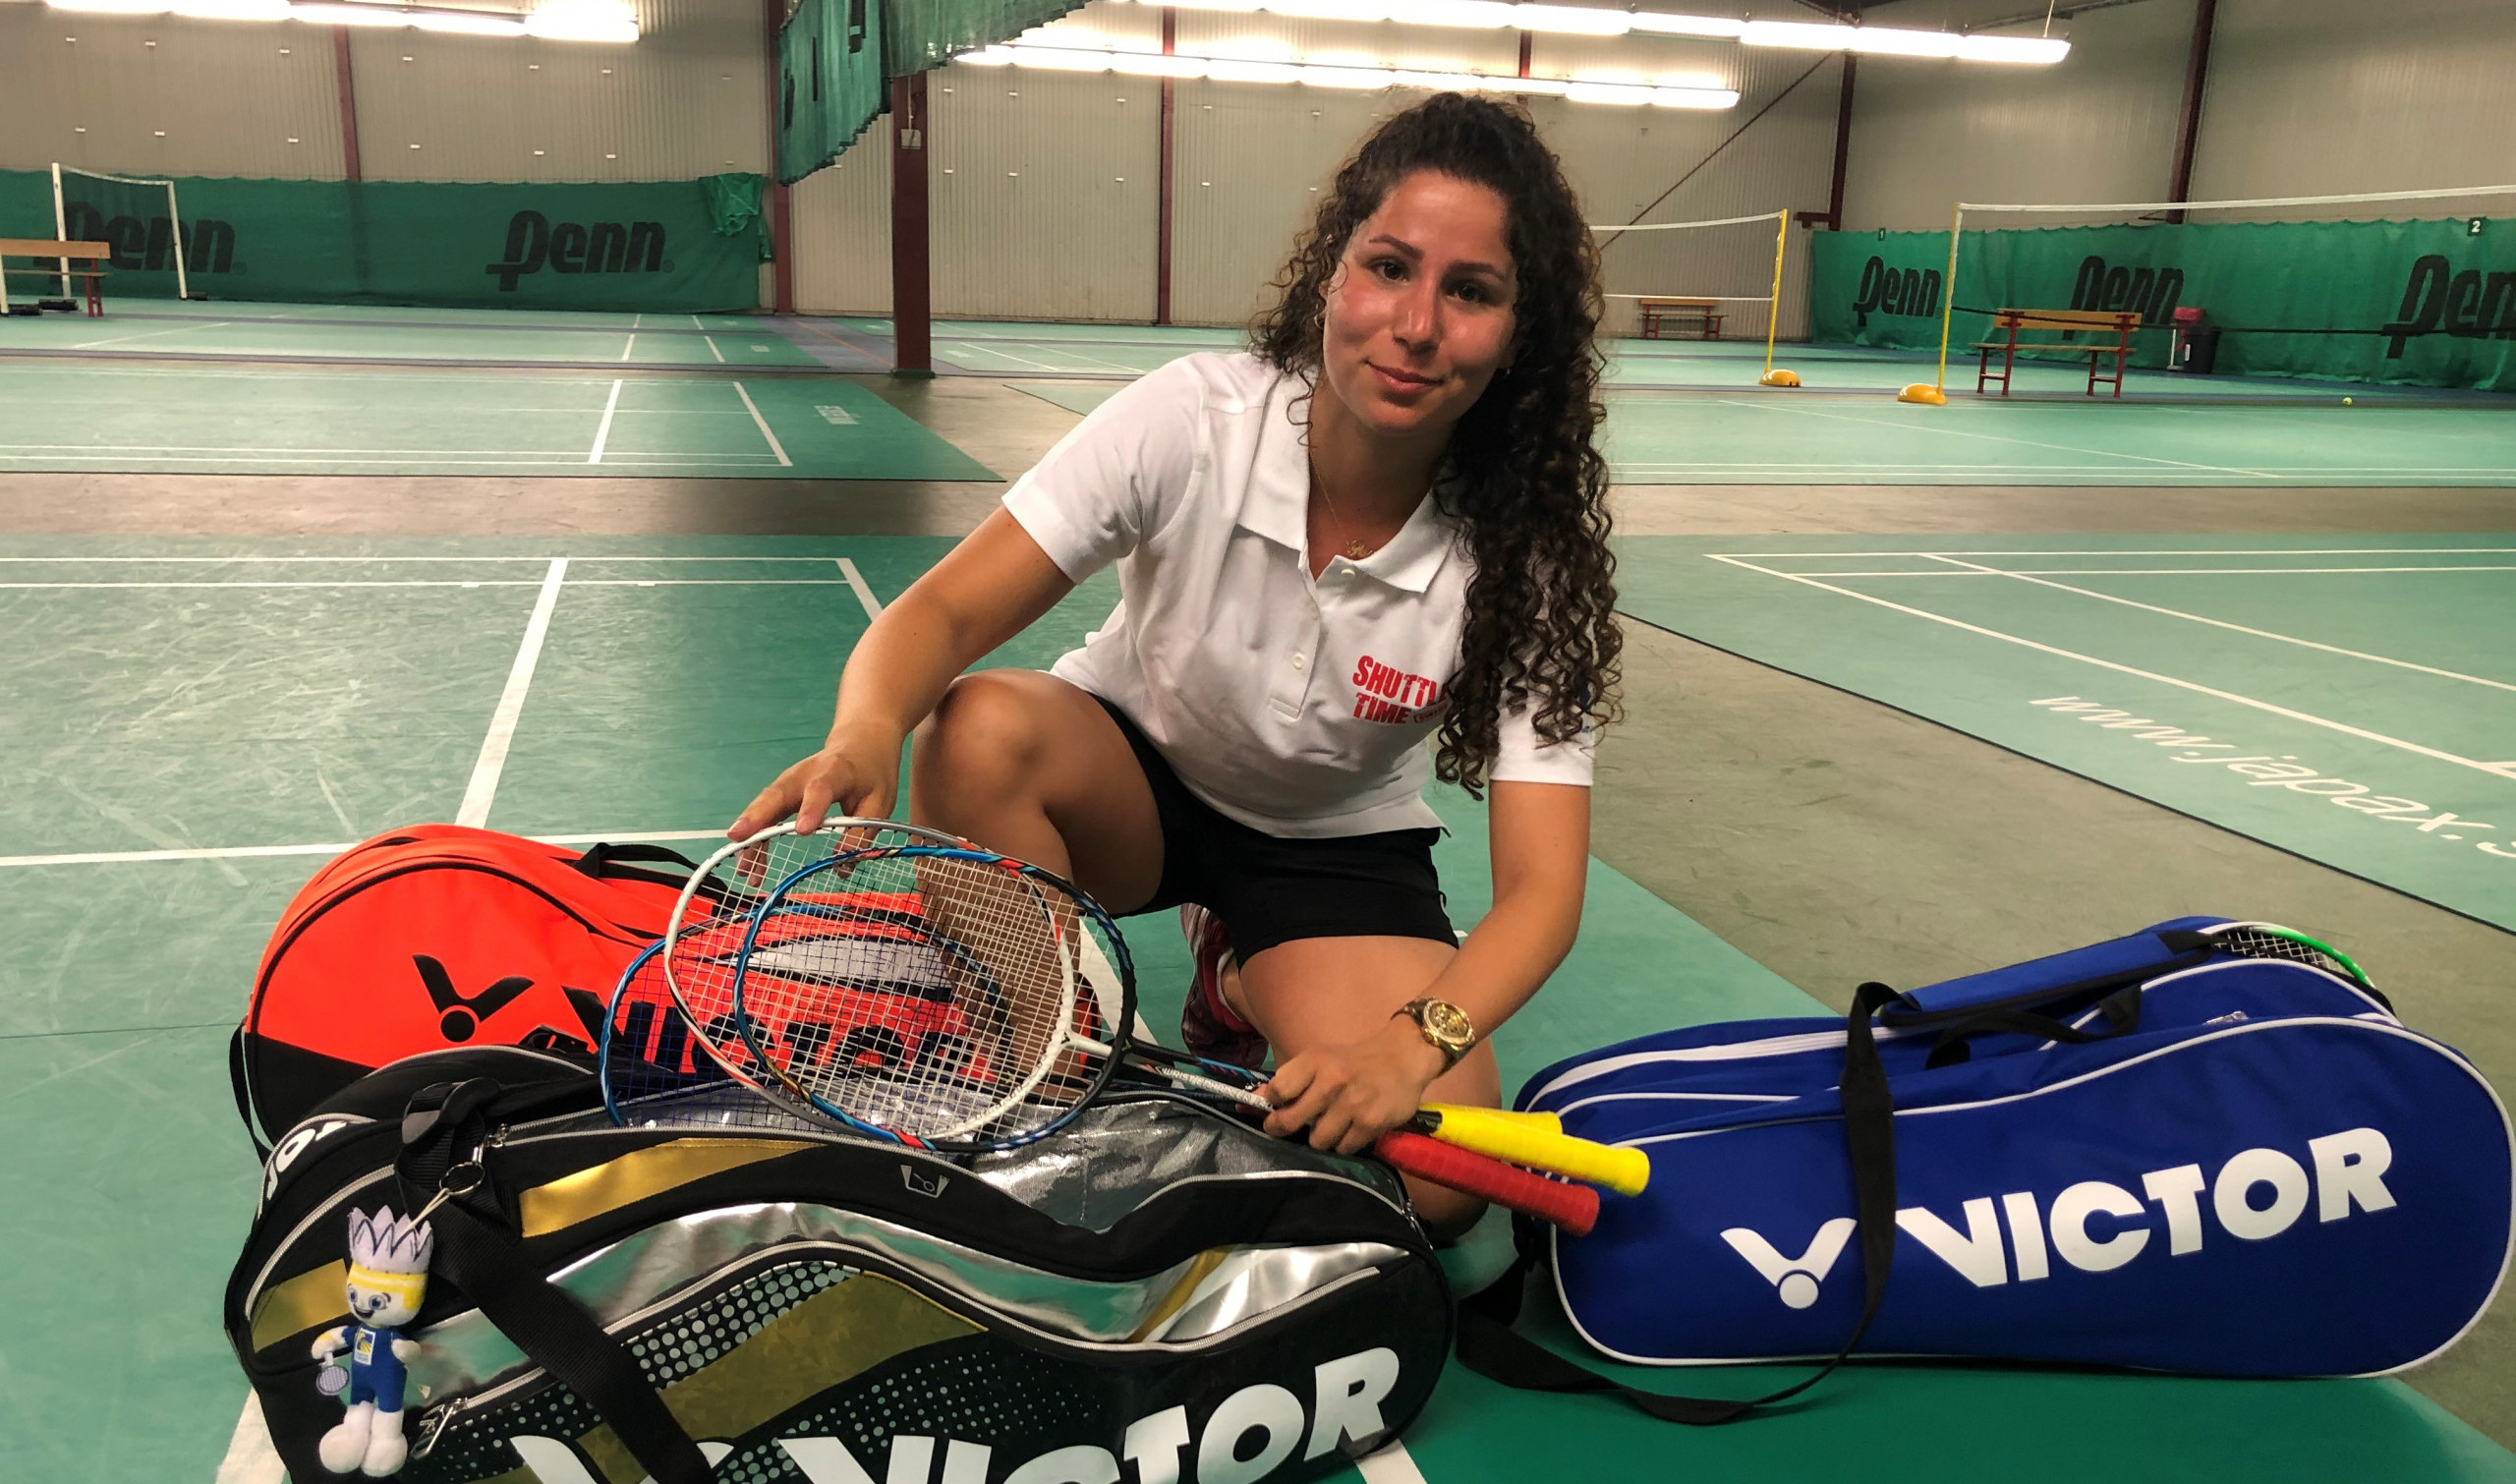 Meet Paniz, Whose 'Parallel Play' is Making History